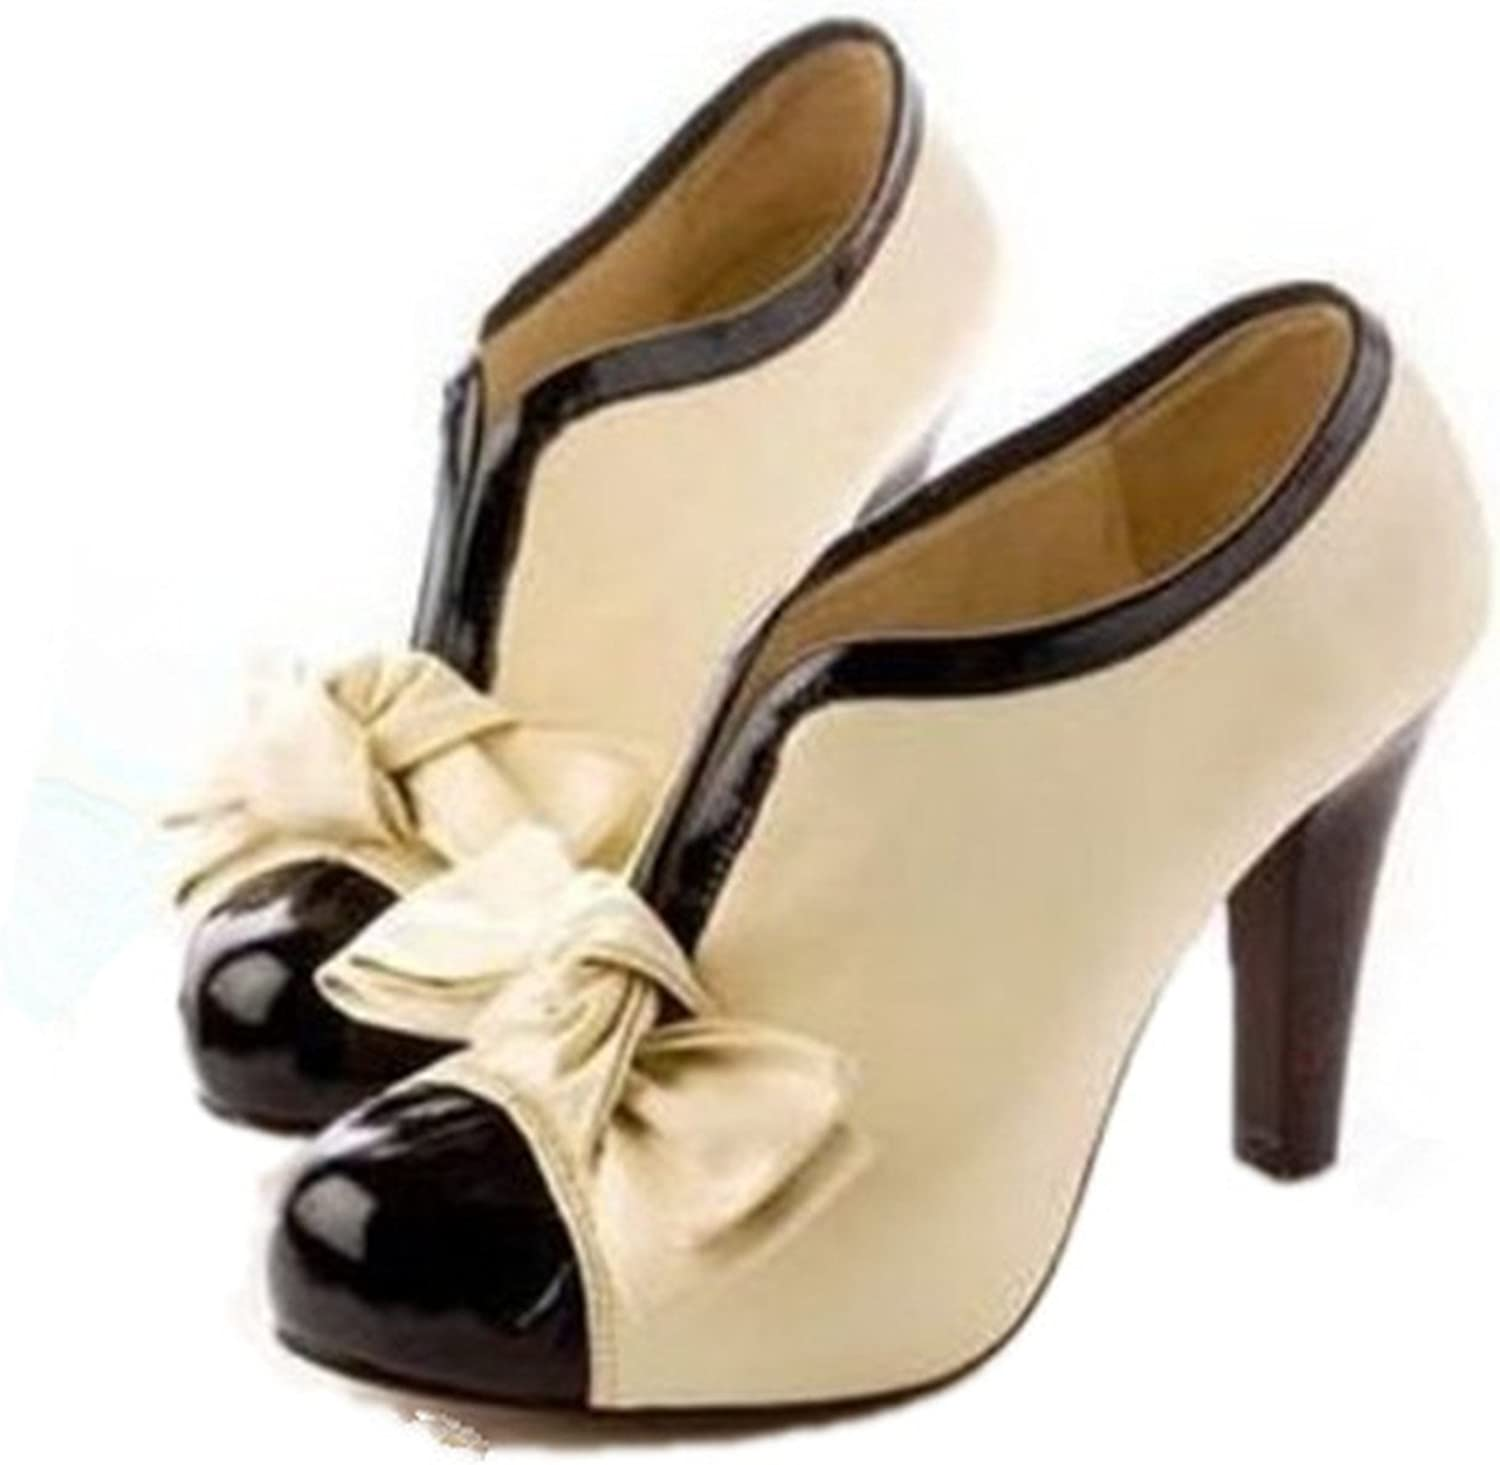 Sville Mary Women Big Size 34-43 High Heels Lady Bowtie Pumps Wedding Party shoes